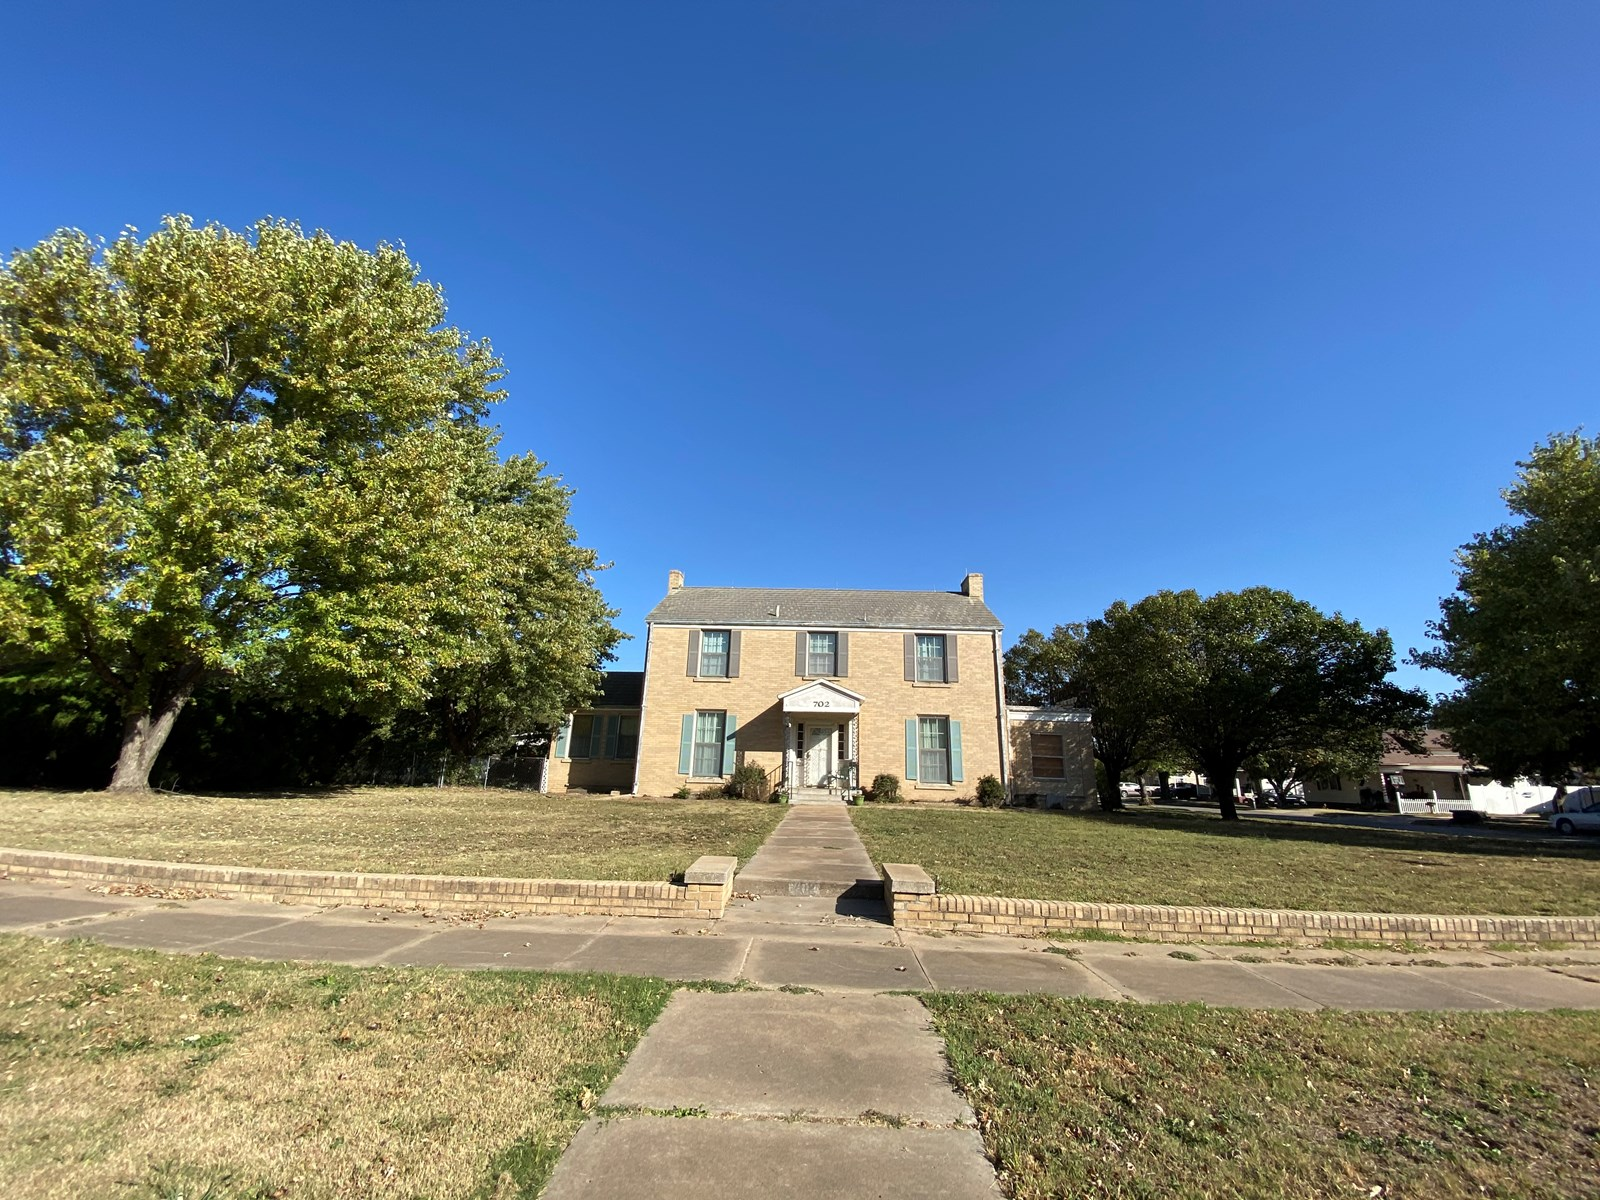 Blackwell, Okla. 3 Bed 3 Bath  with 1 Bed/Bath Garage Apart.